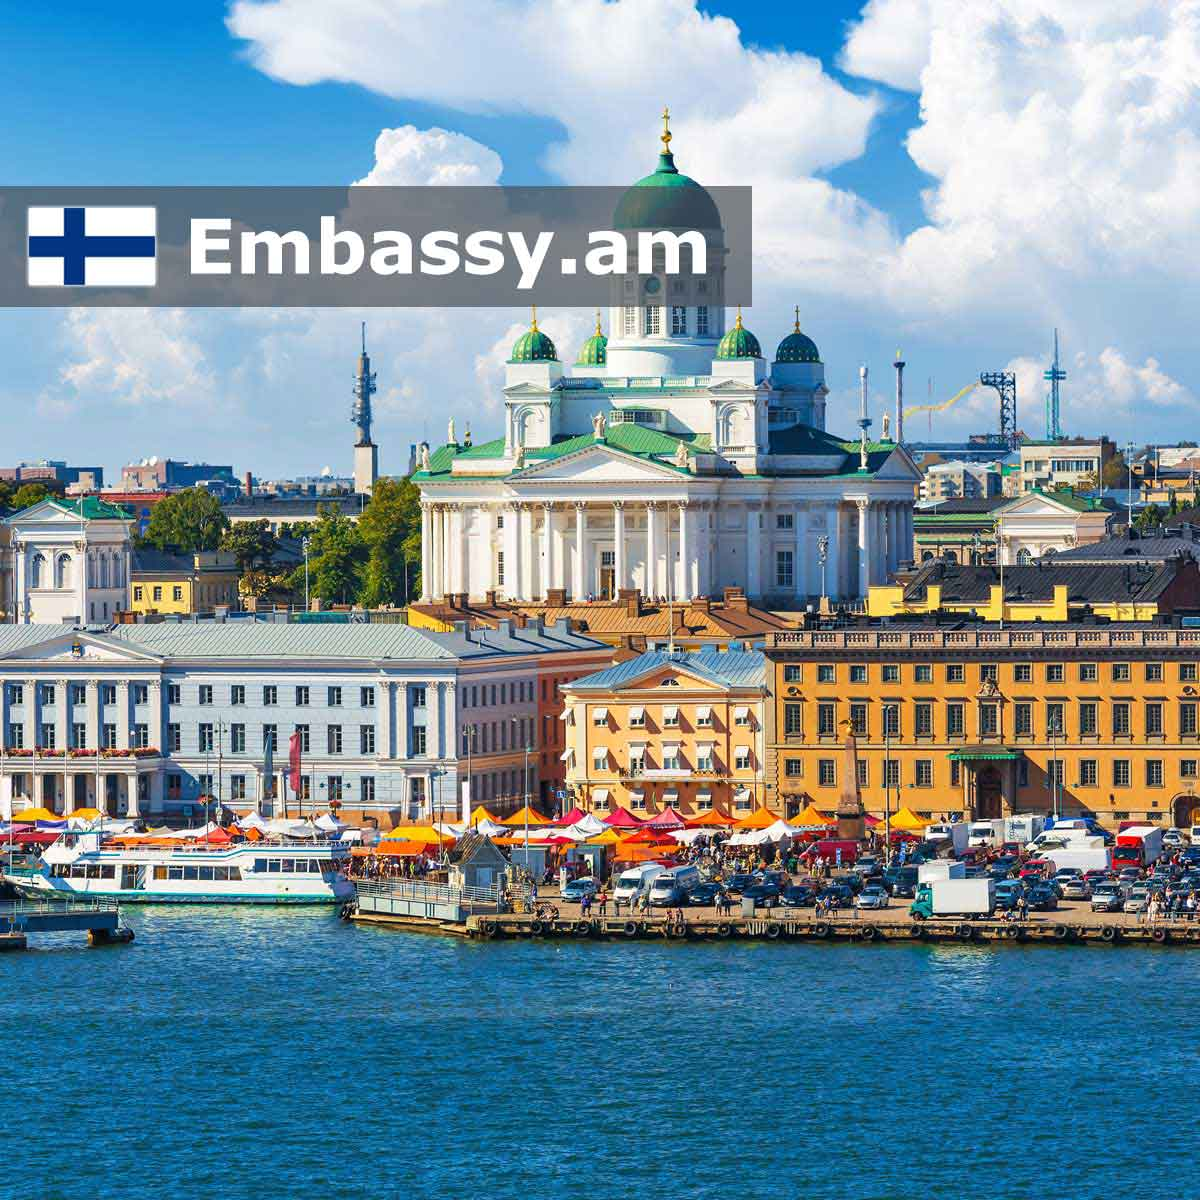 Hotels in Finland- Embassy.am